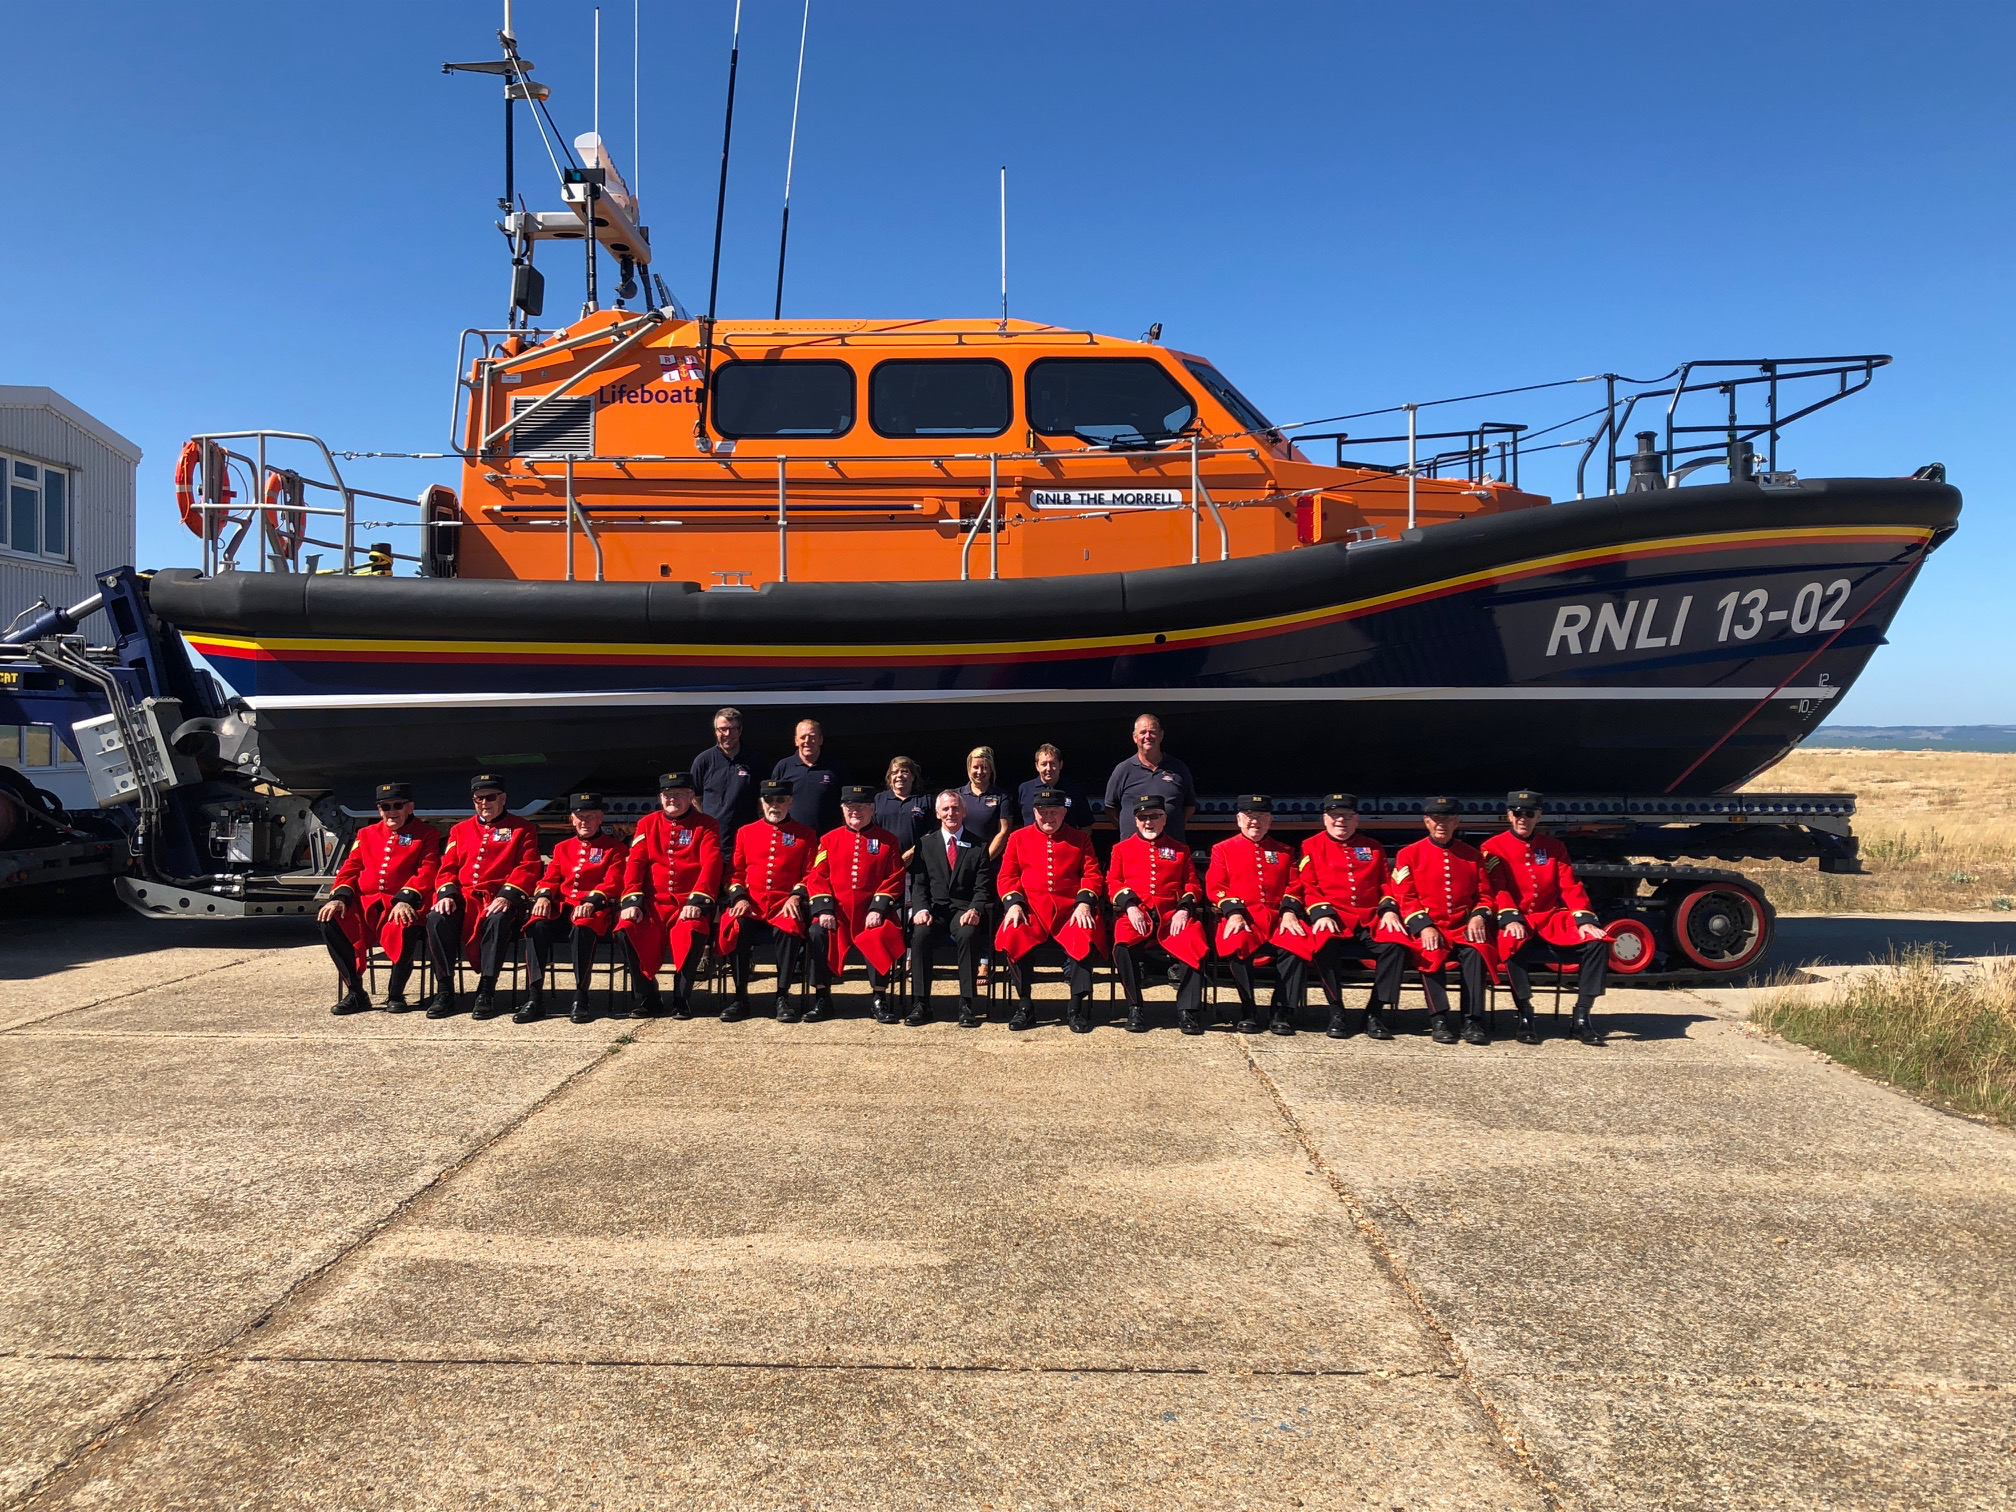 Dungeness station volunteers with the Chelsea pensioners in front the Dungeness Shannon class lifeboat 13-02 'The Morrell'